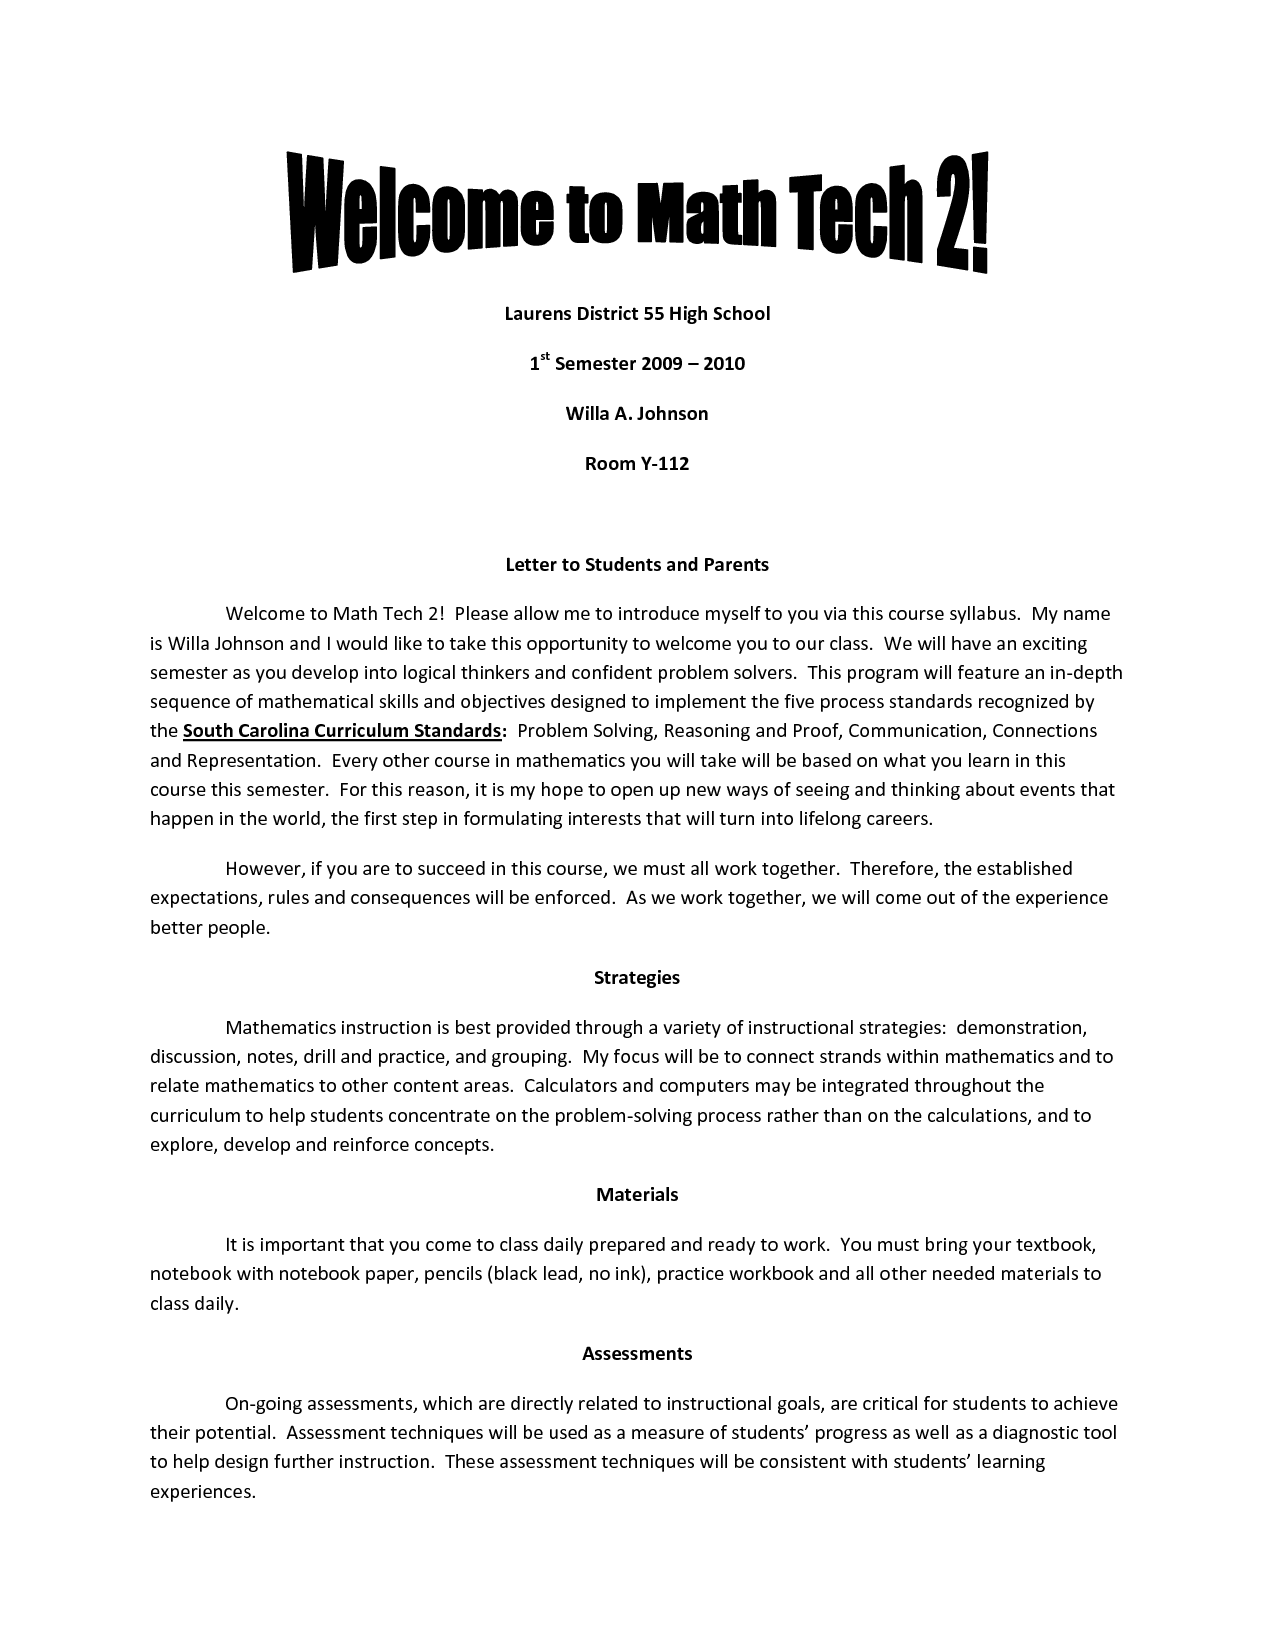 cb67c78212ceb1094c5b6c27f328152f Teacher Parent Introduction Letter Template on sample school, teacher parent, for networking, preschool teacher, jewelry business,